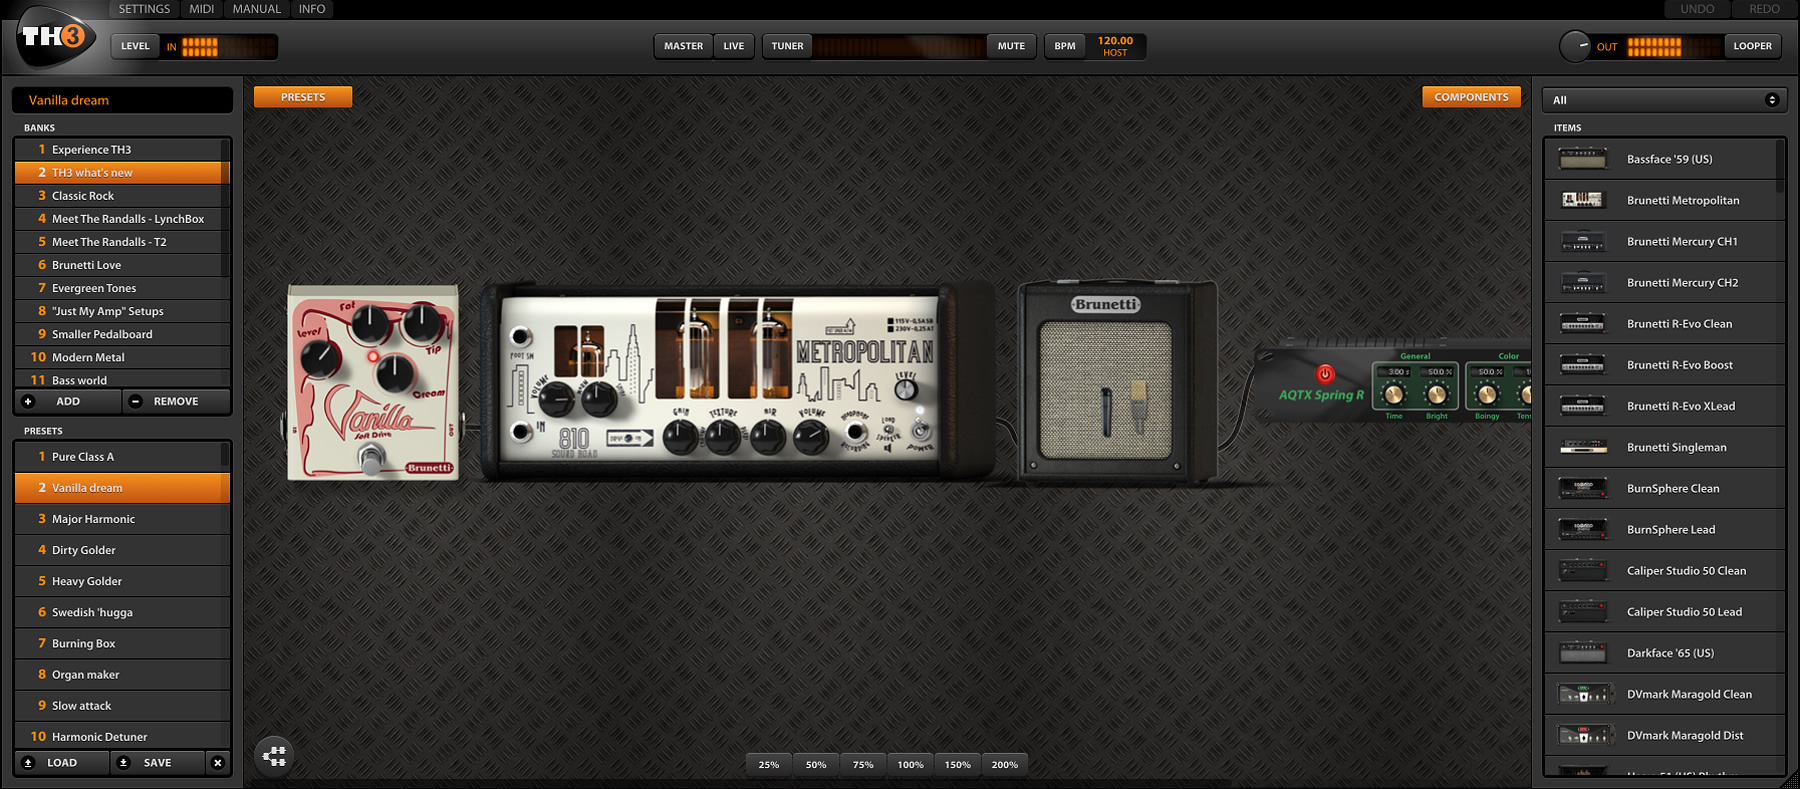 KVR: TH3 by Overloud - Distortion / Overdrive / Amp VST